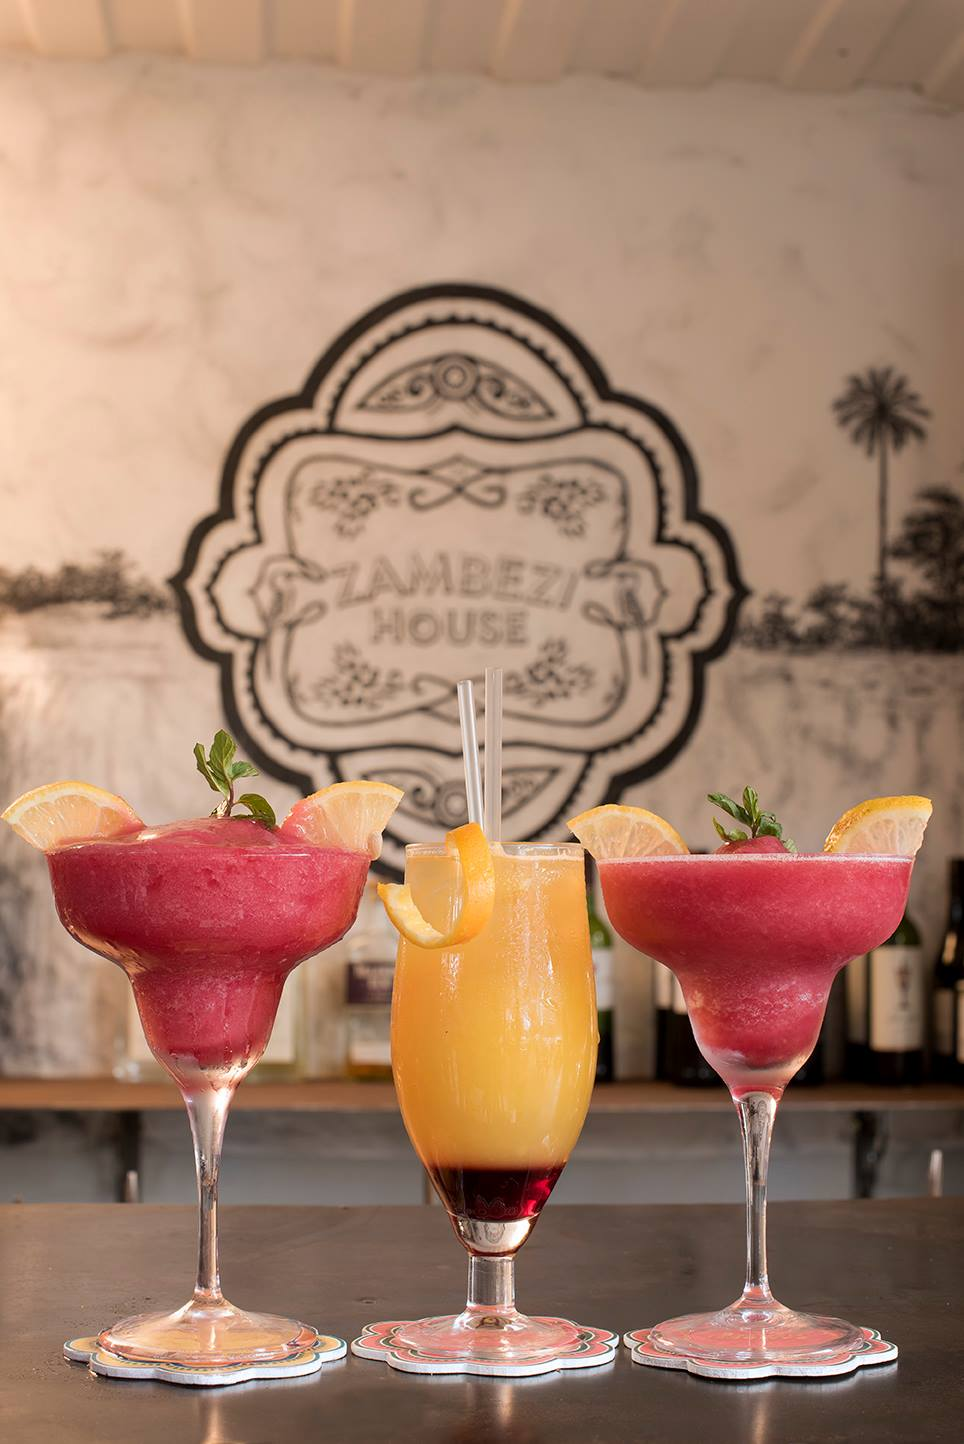 Zambezi House Cocktails 7 Sept